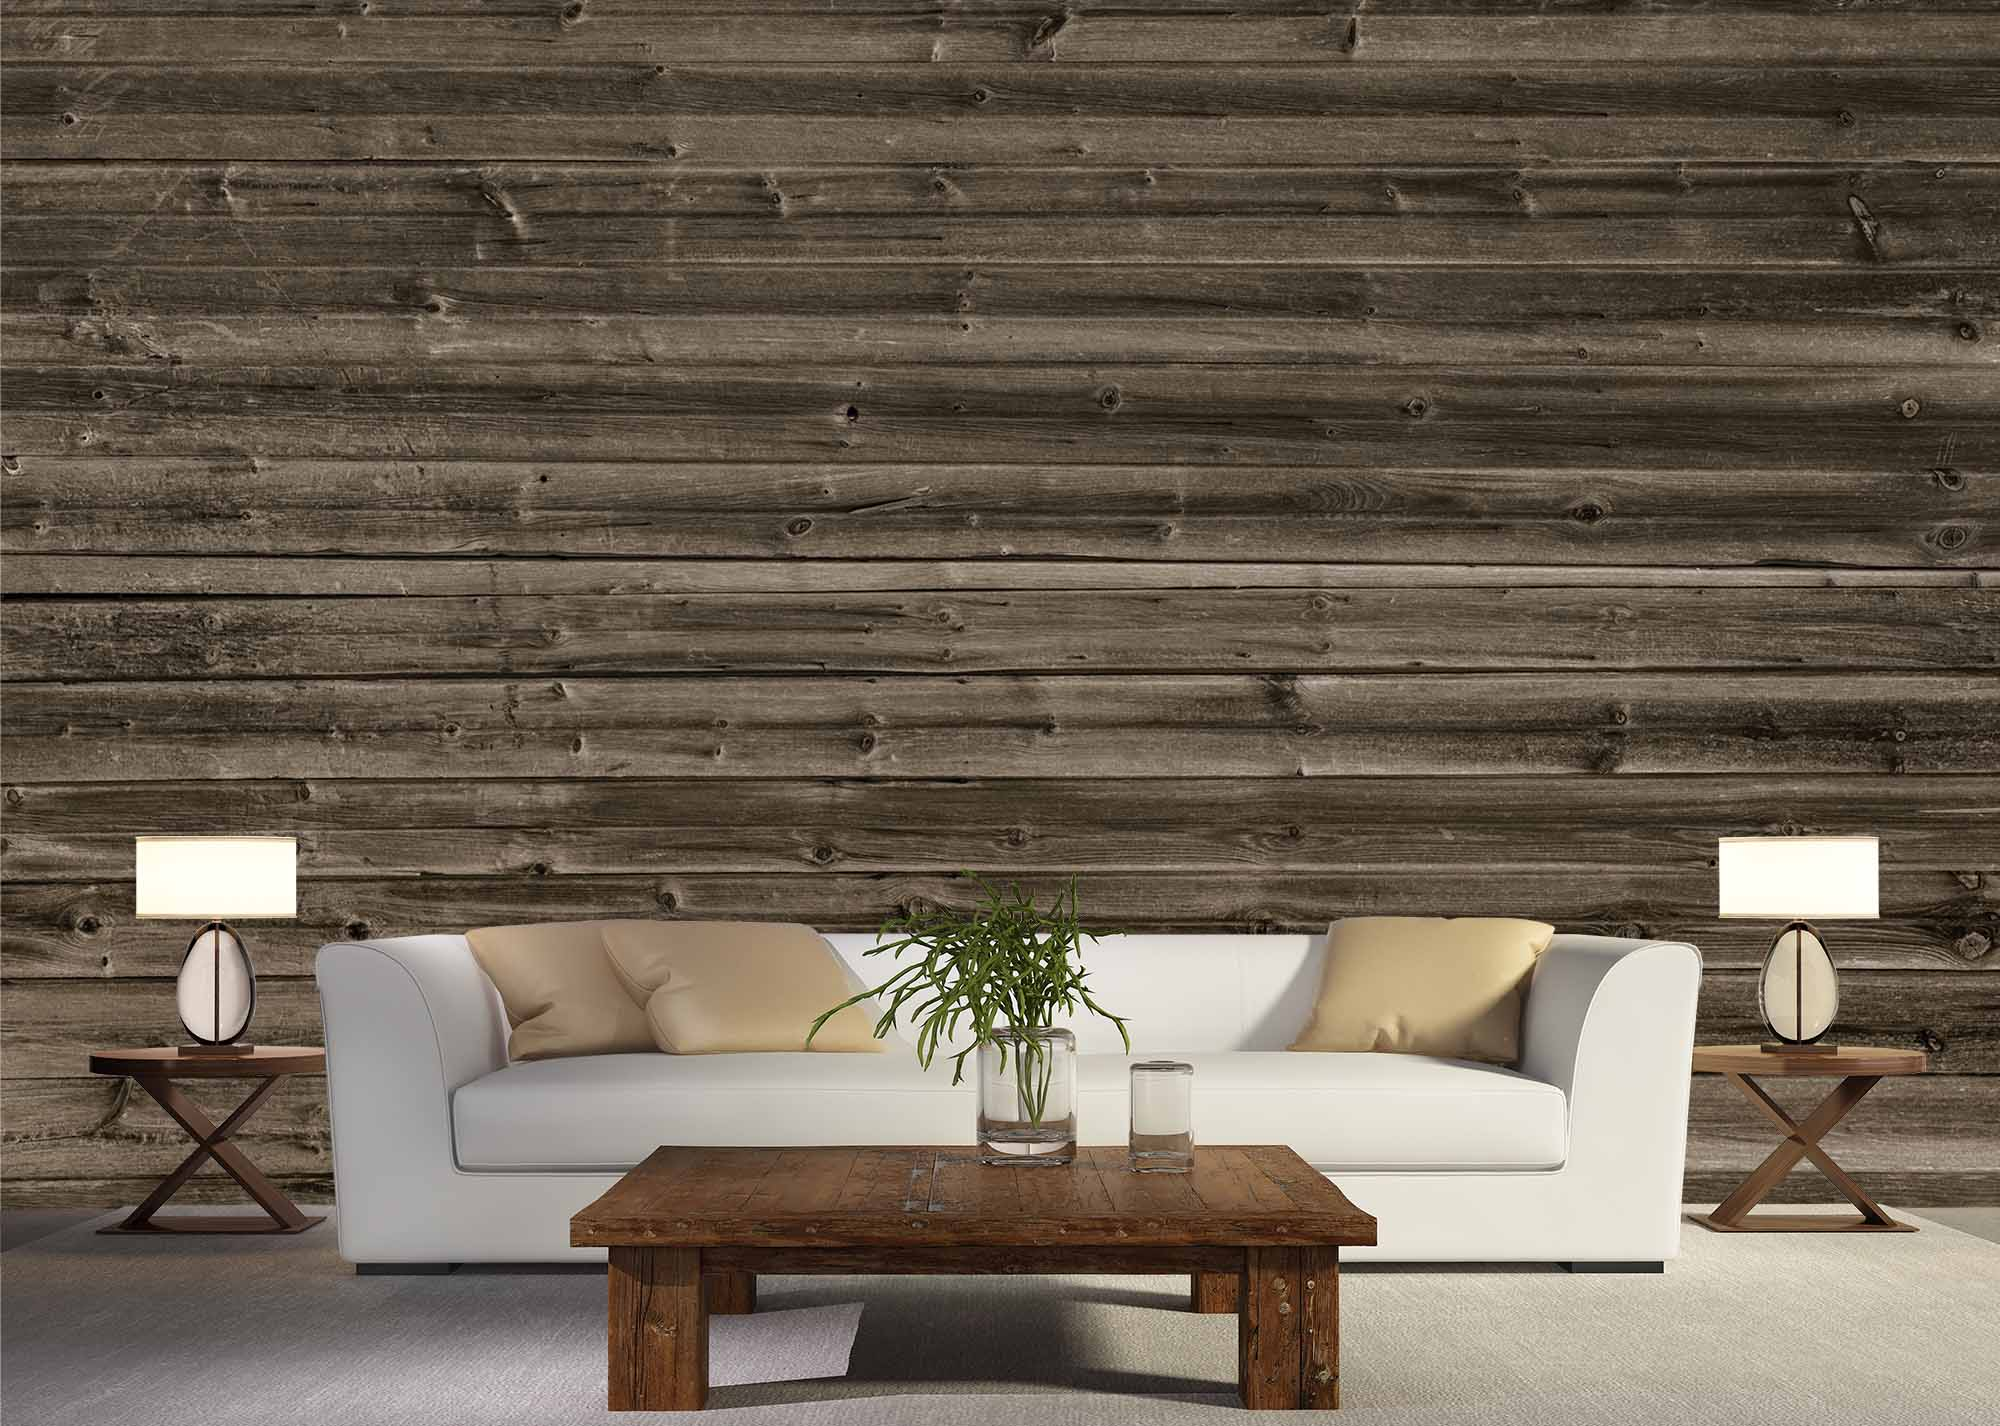 Horizontal Barn Wood Wall Mural Talissa Decor Wall Murals